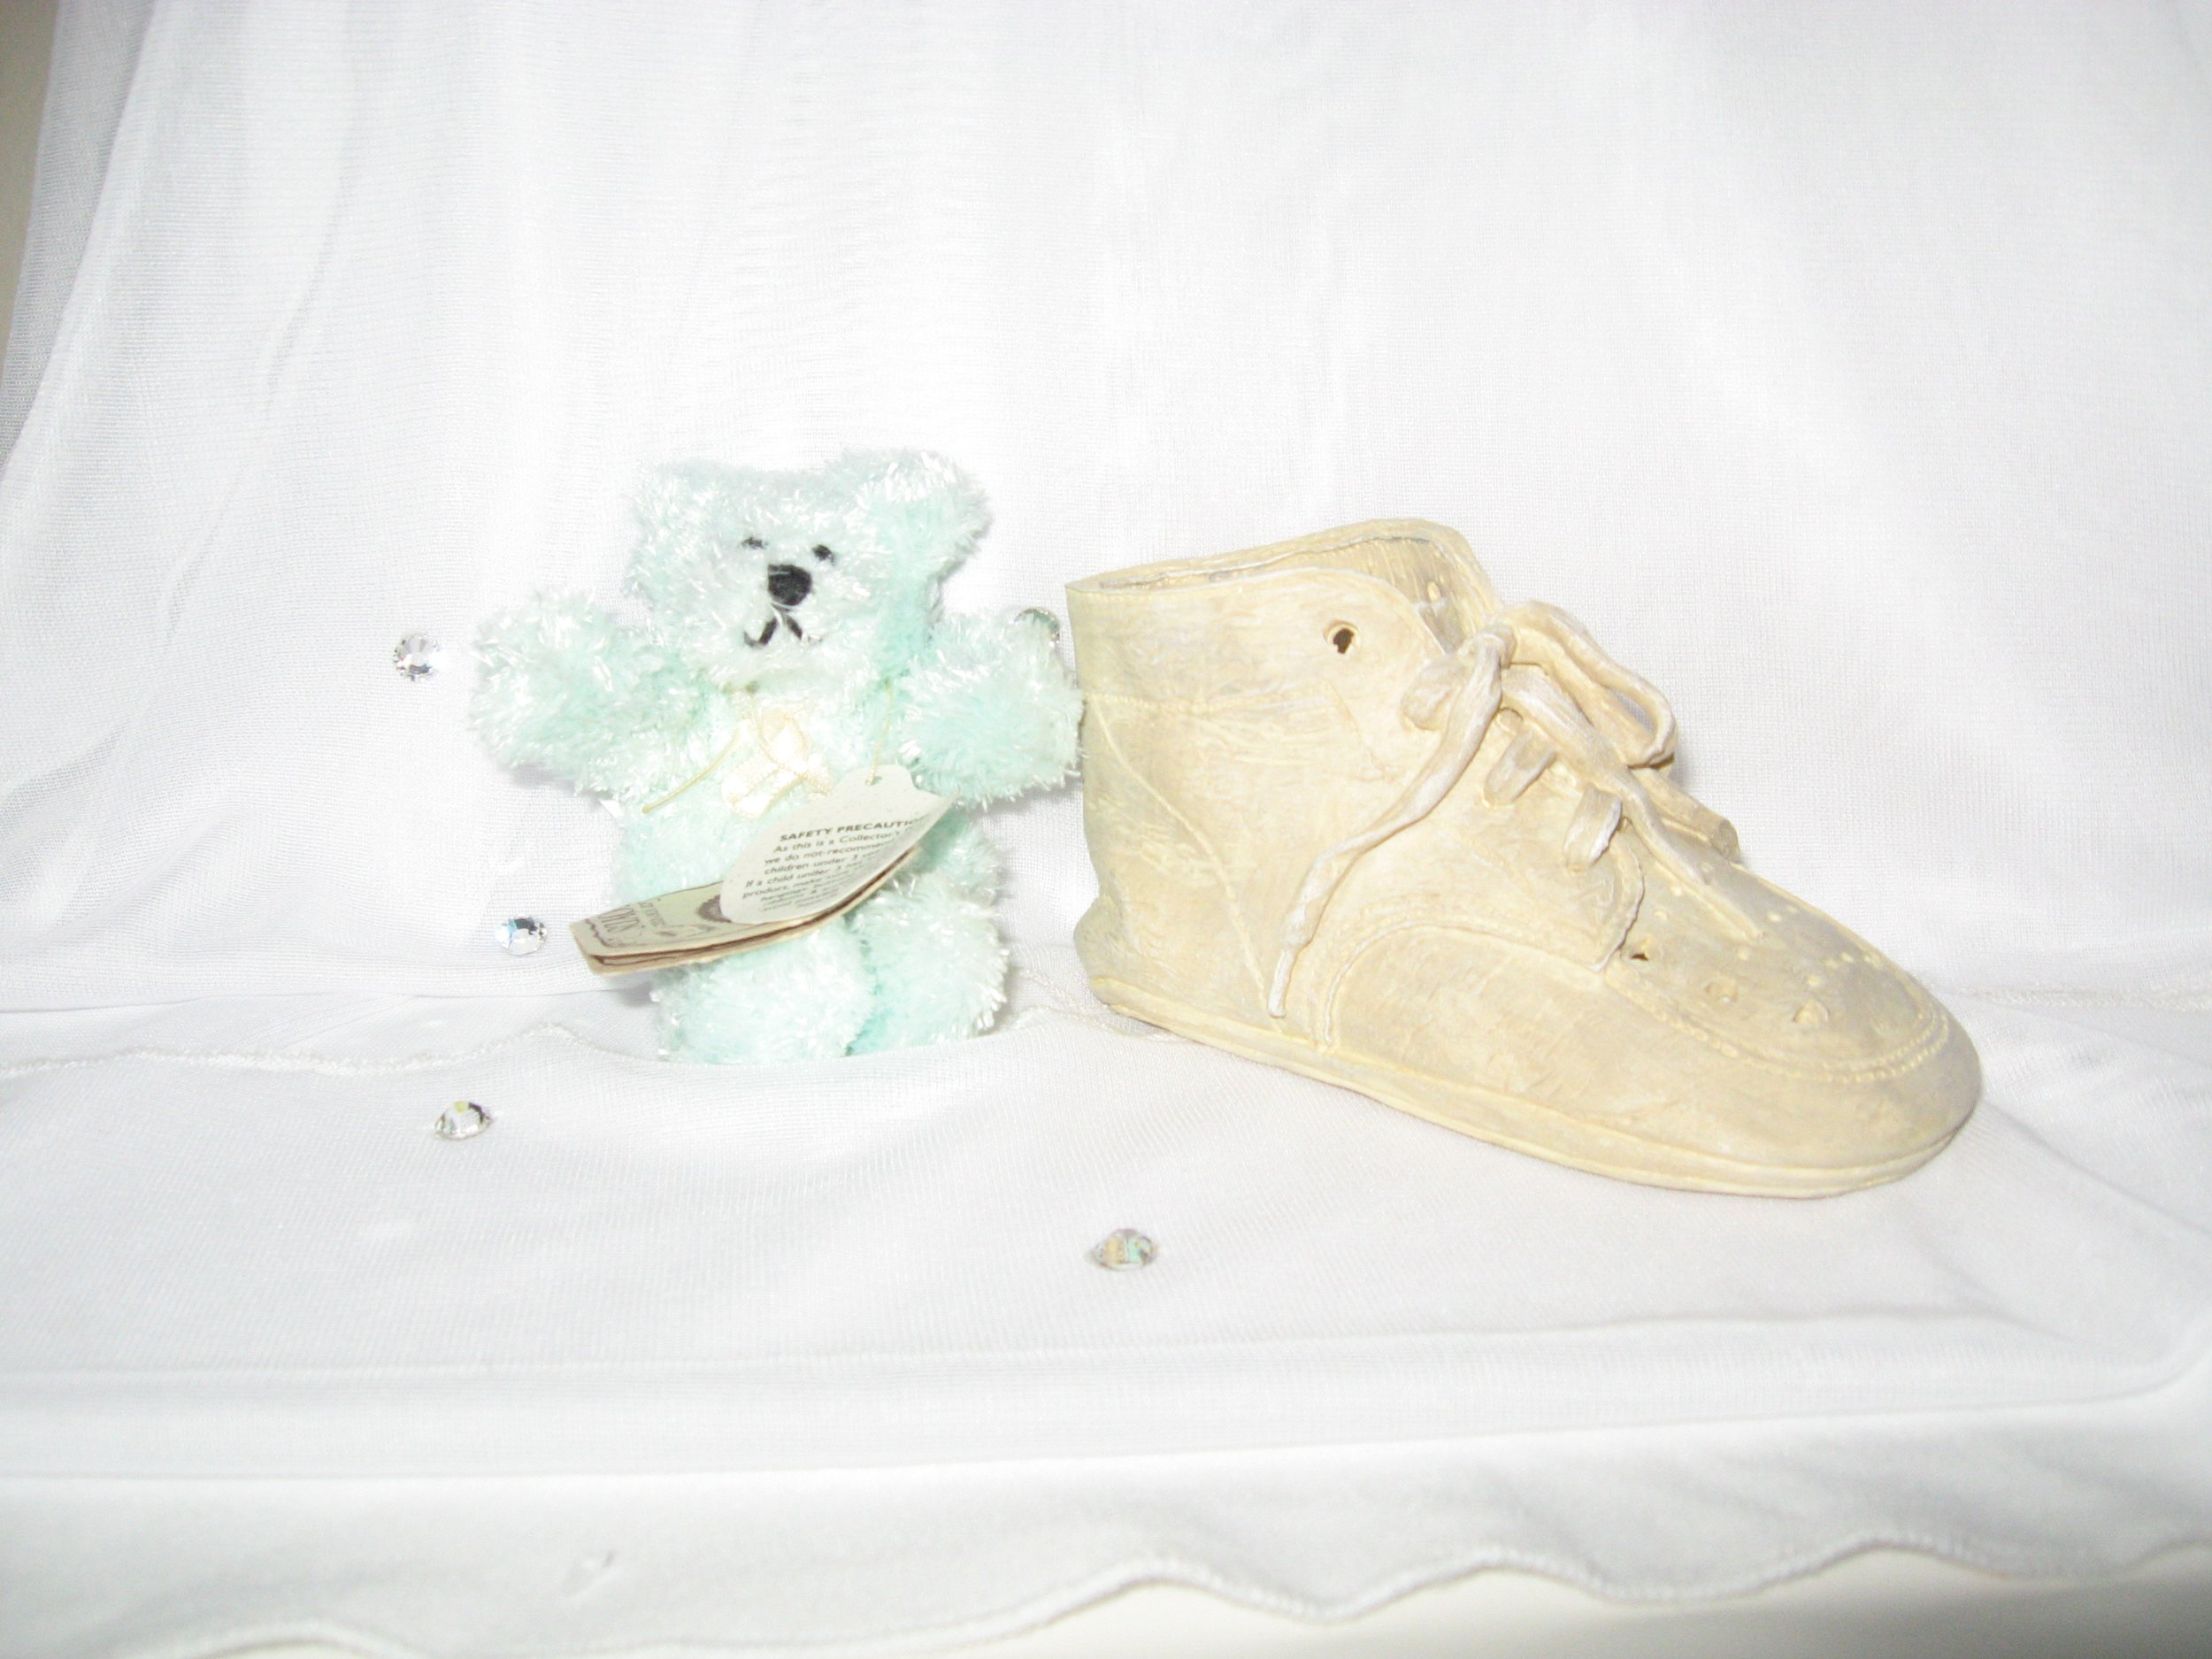 Boyds Baby Steps Lissy Resin Baby Bootie with Mint Green Mini Boyds Bear